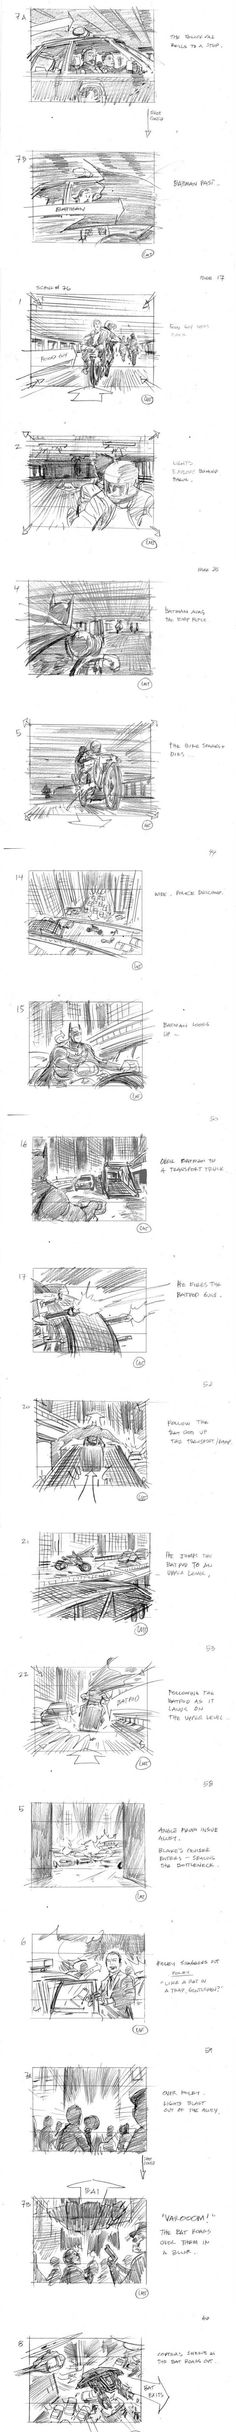 How to Storyboard a Short Film Plus Free Template downloads to - sample script storyboard